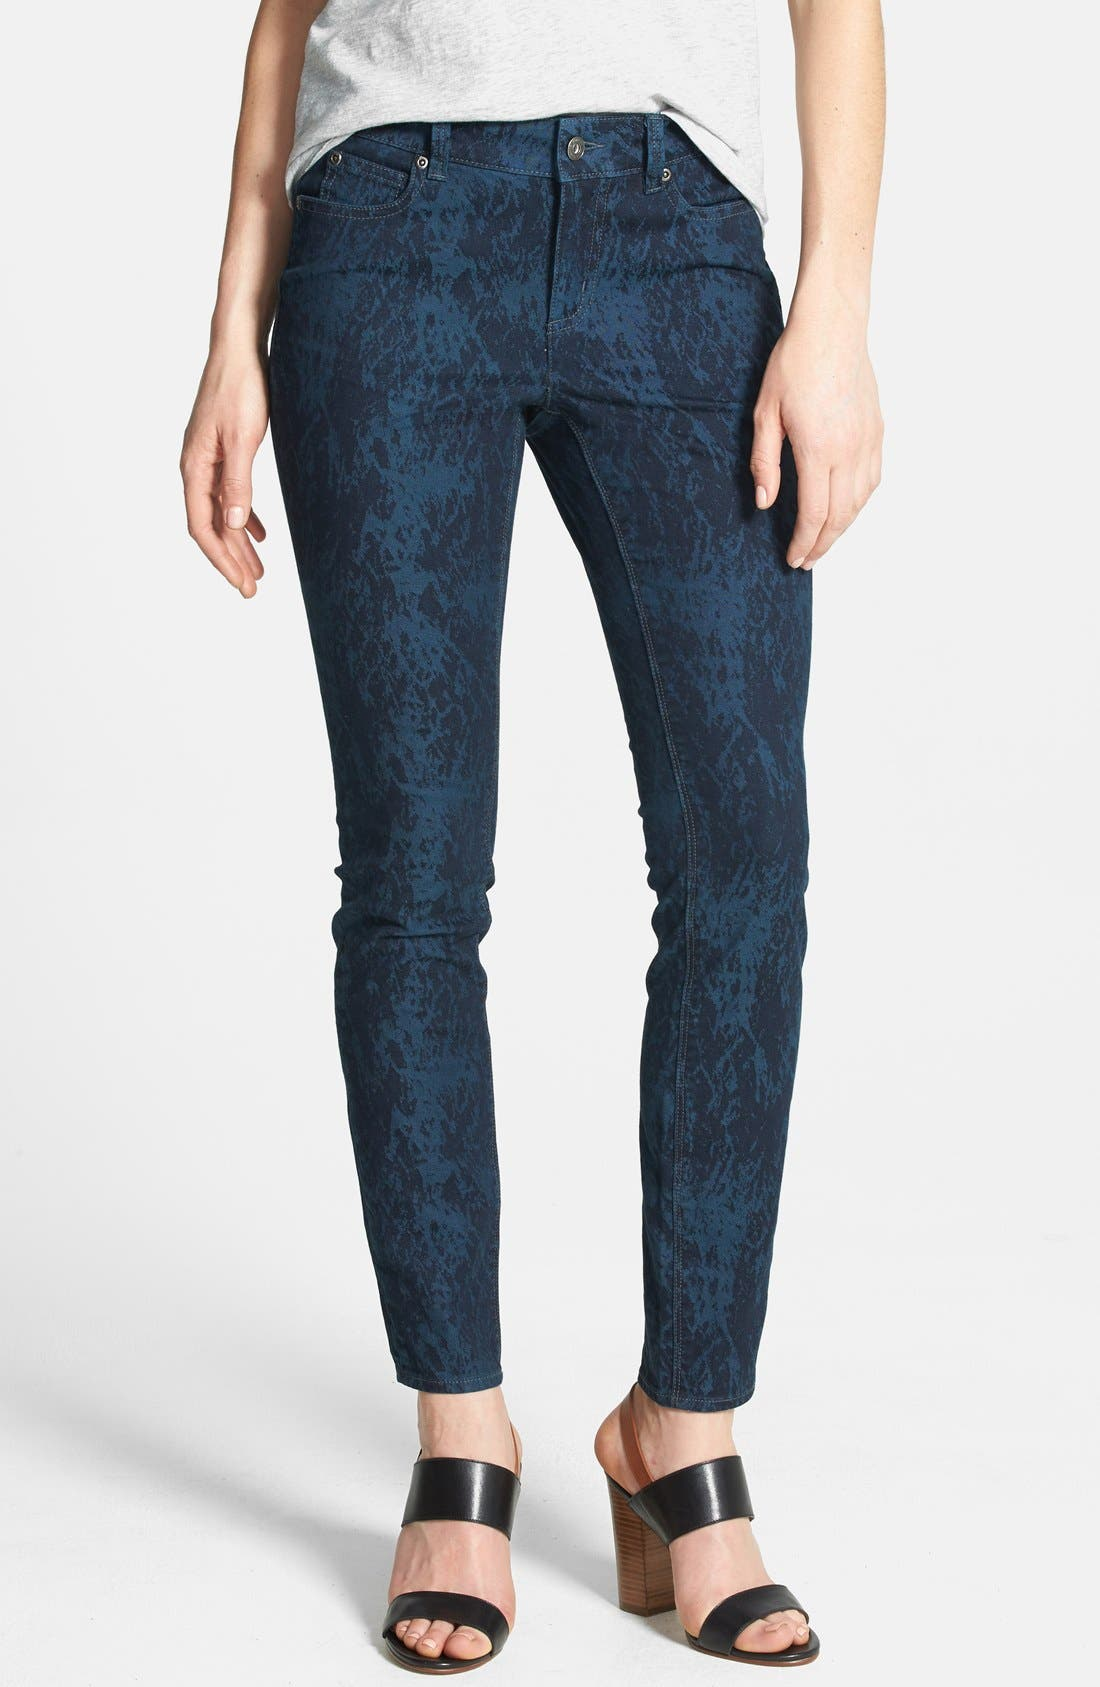 Main Image - Two by Vince Camuto 'Paint Splattered' Print Skinny Jeans (Blue Night)